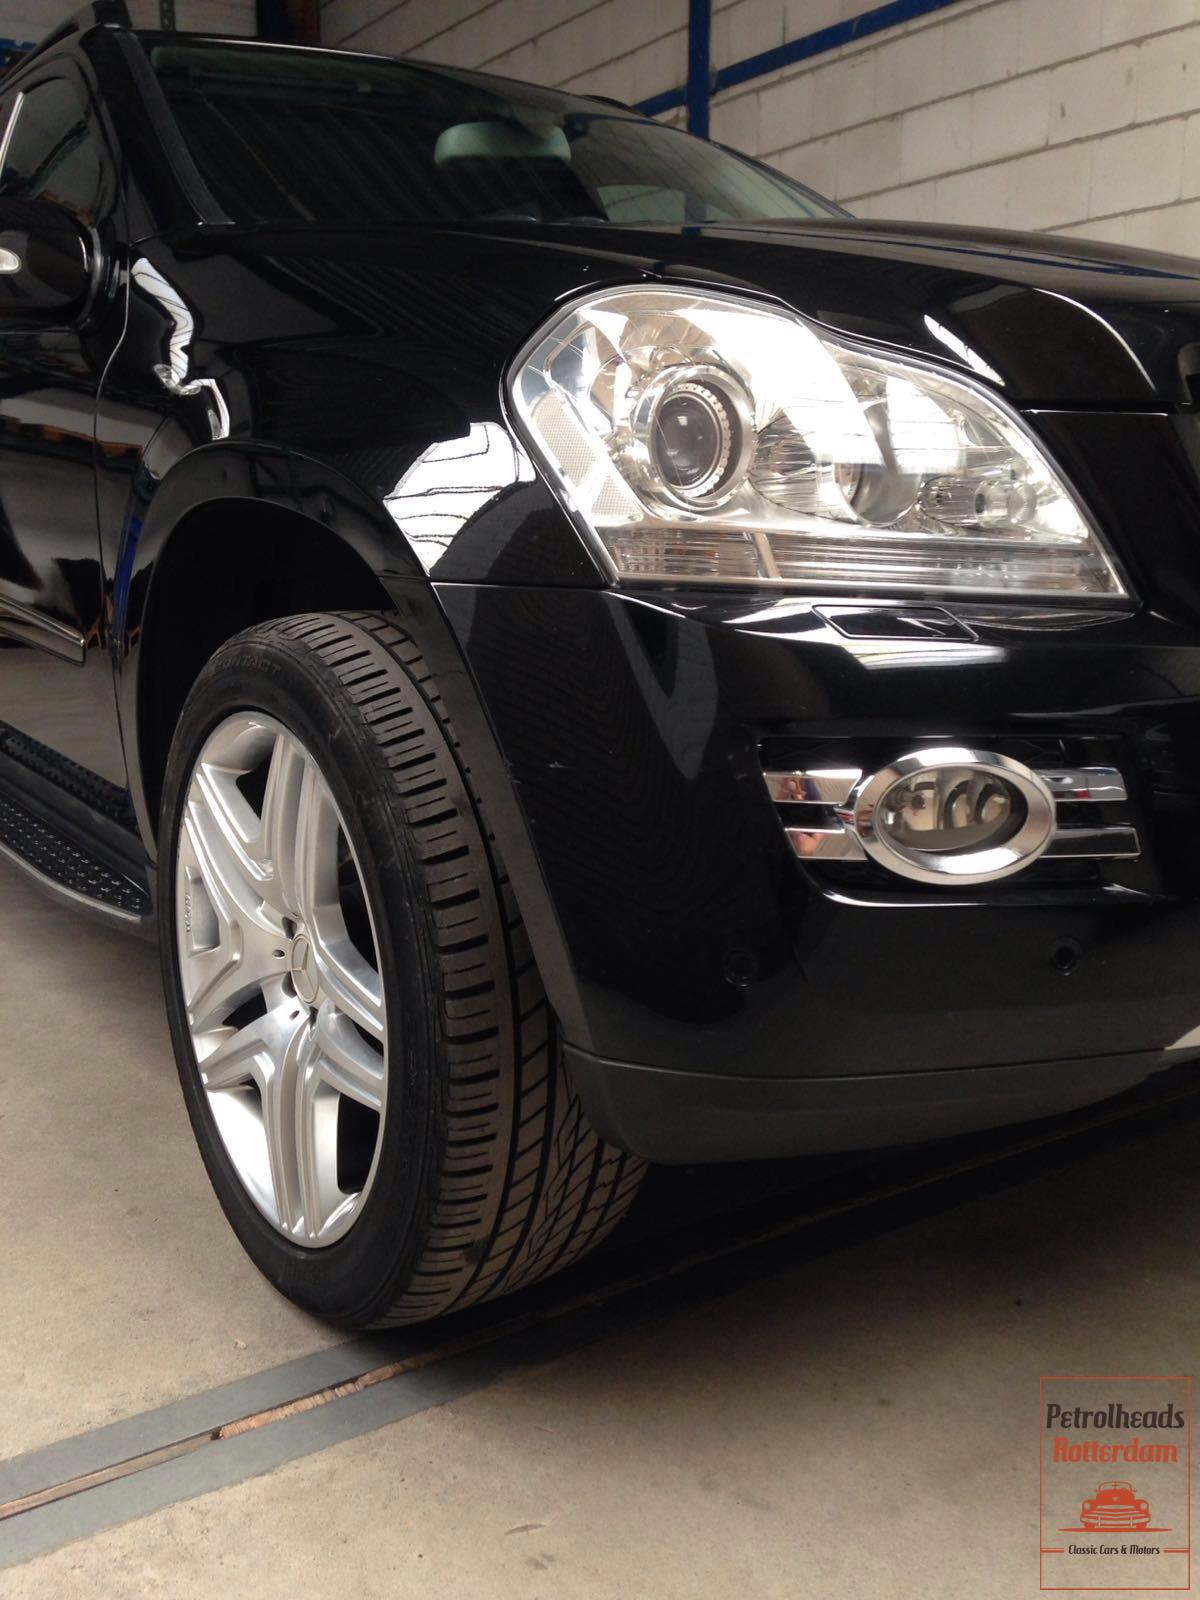 Mercedes GL320 CDI 4-Matic 2007 Right front